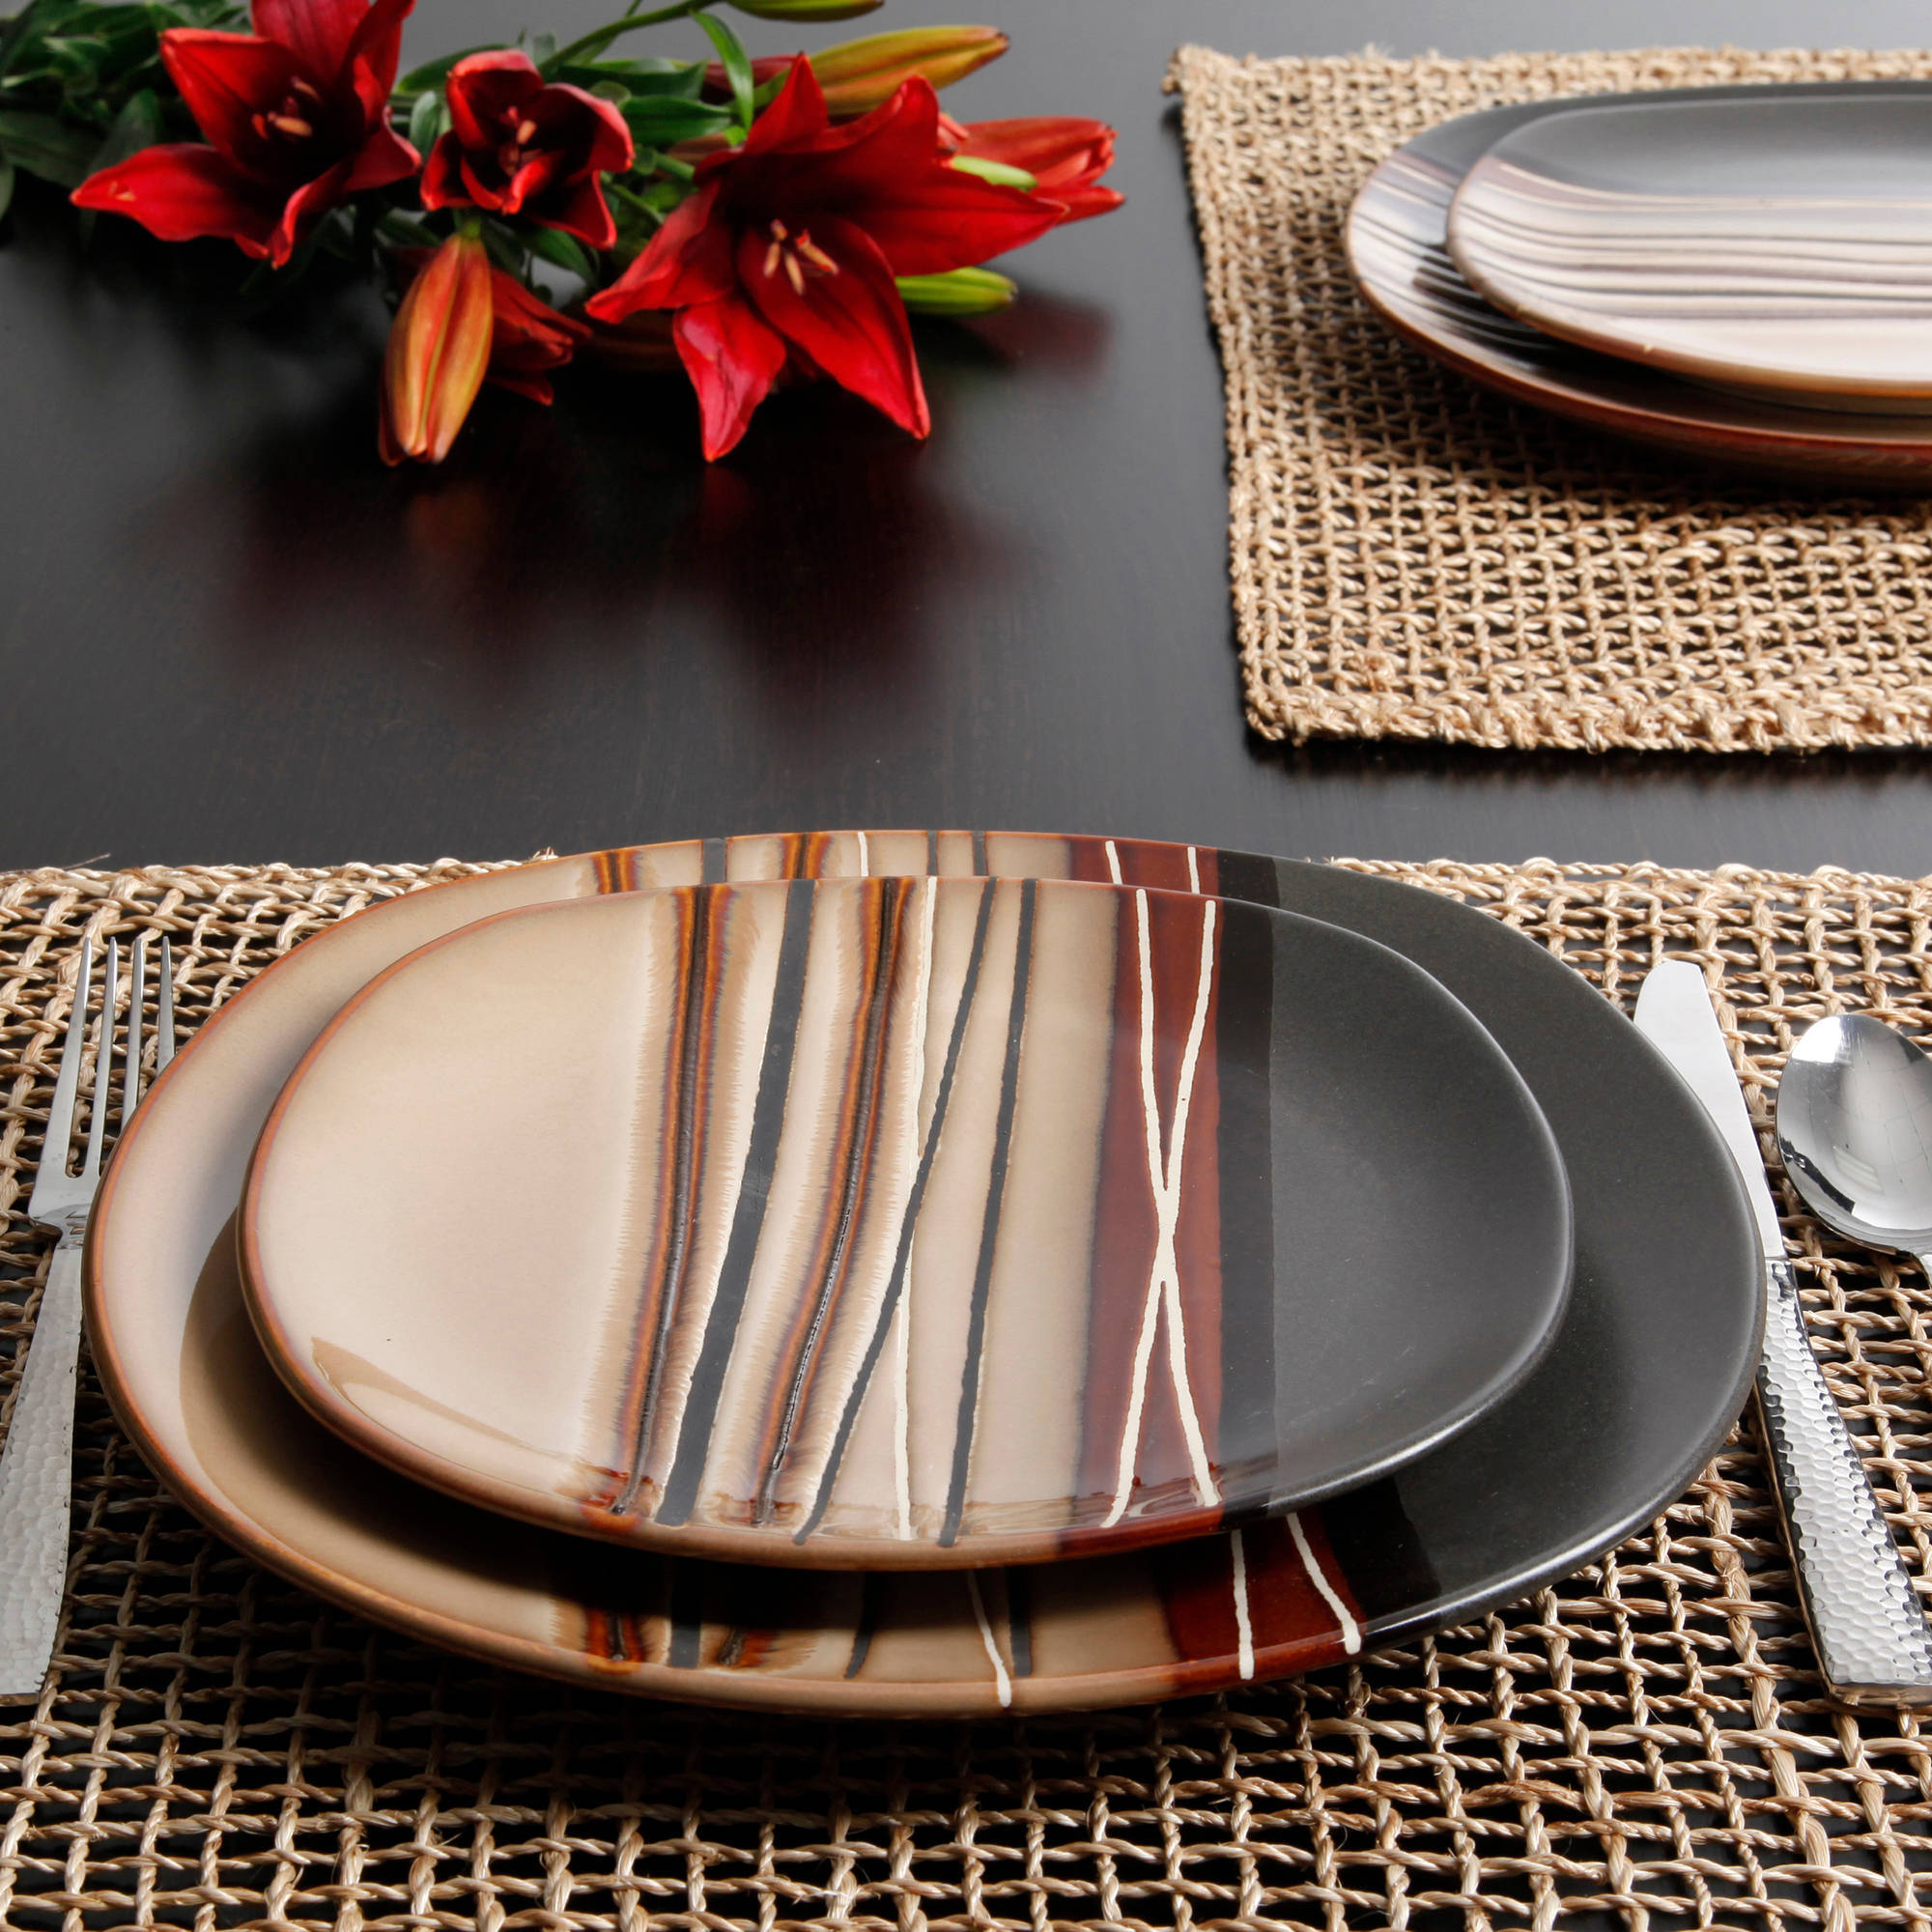 Better Homes and Gardens Bazaar 16-Piece Dinnerware Set - Walmart.com